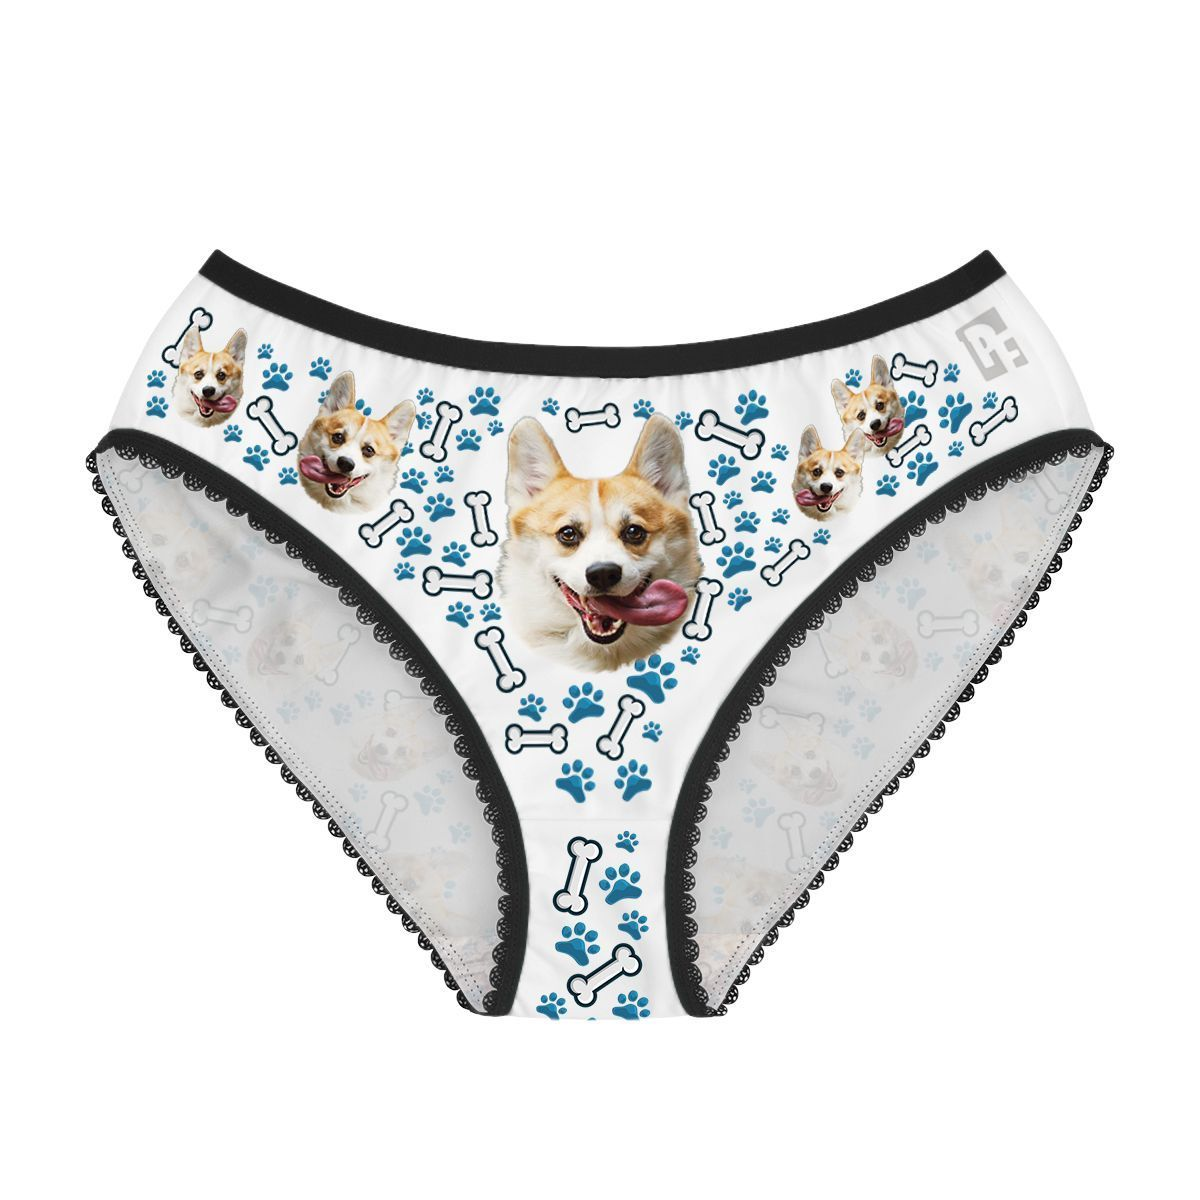 Blue Dog women's underwear briefs personalized with photo printed on them